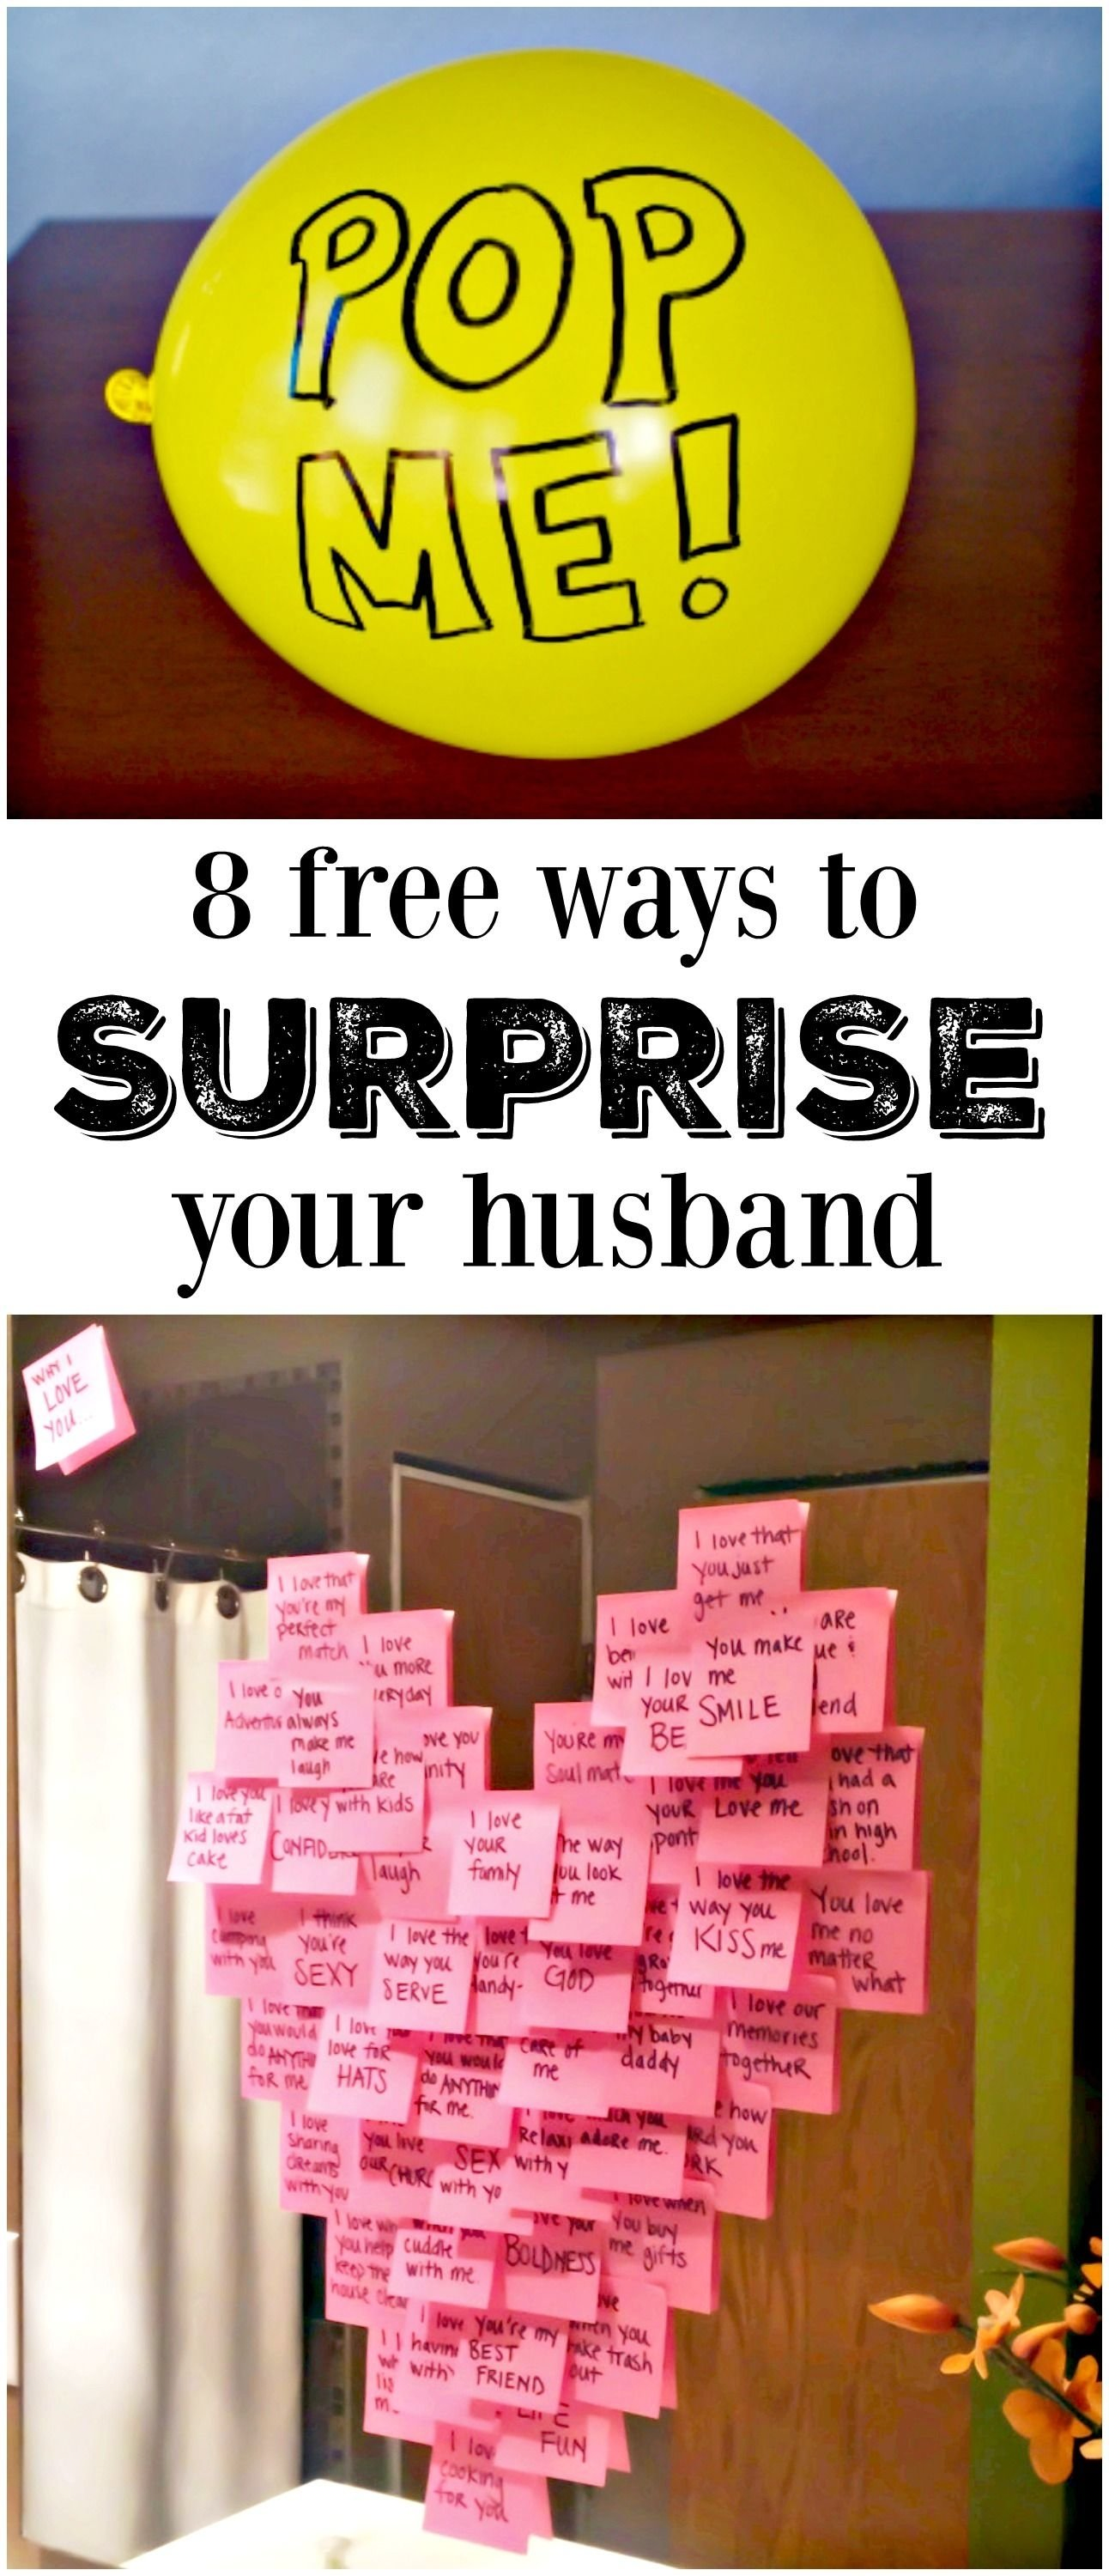 10 Ideal Ideas To Surprise Your Boyfriend 8 meaningful ways to make his day free gift and relationships 8